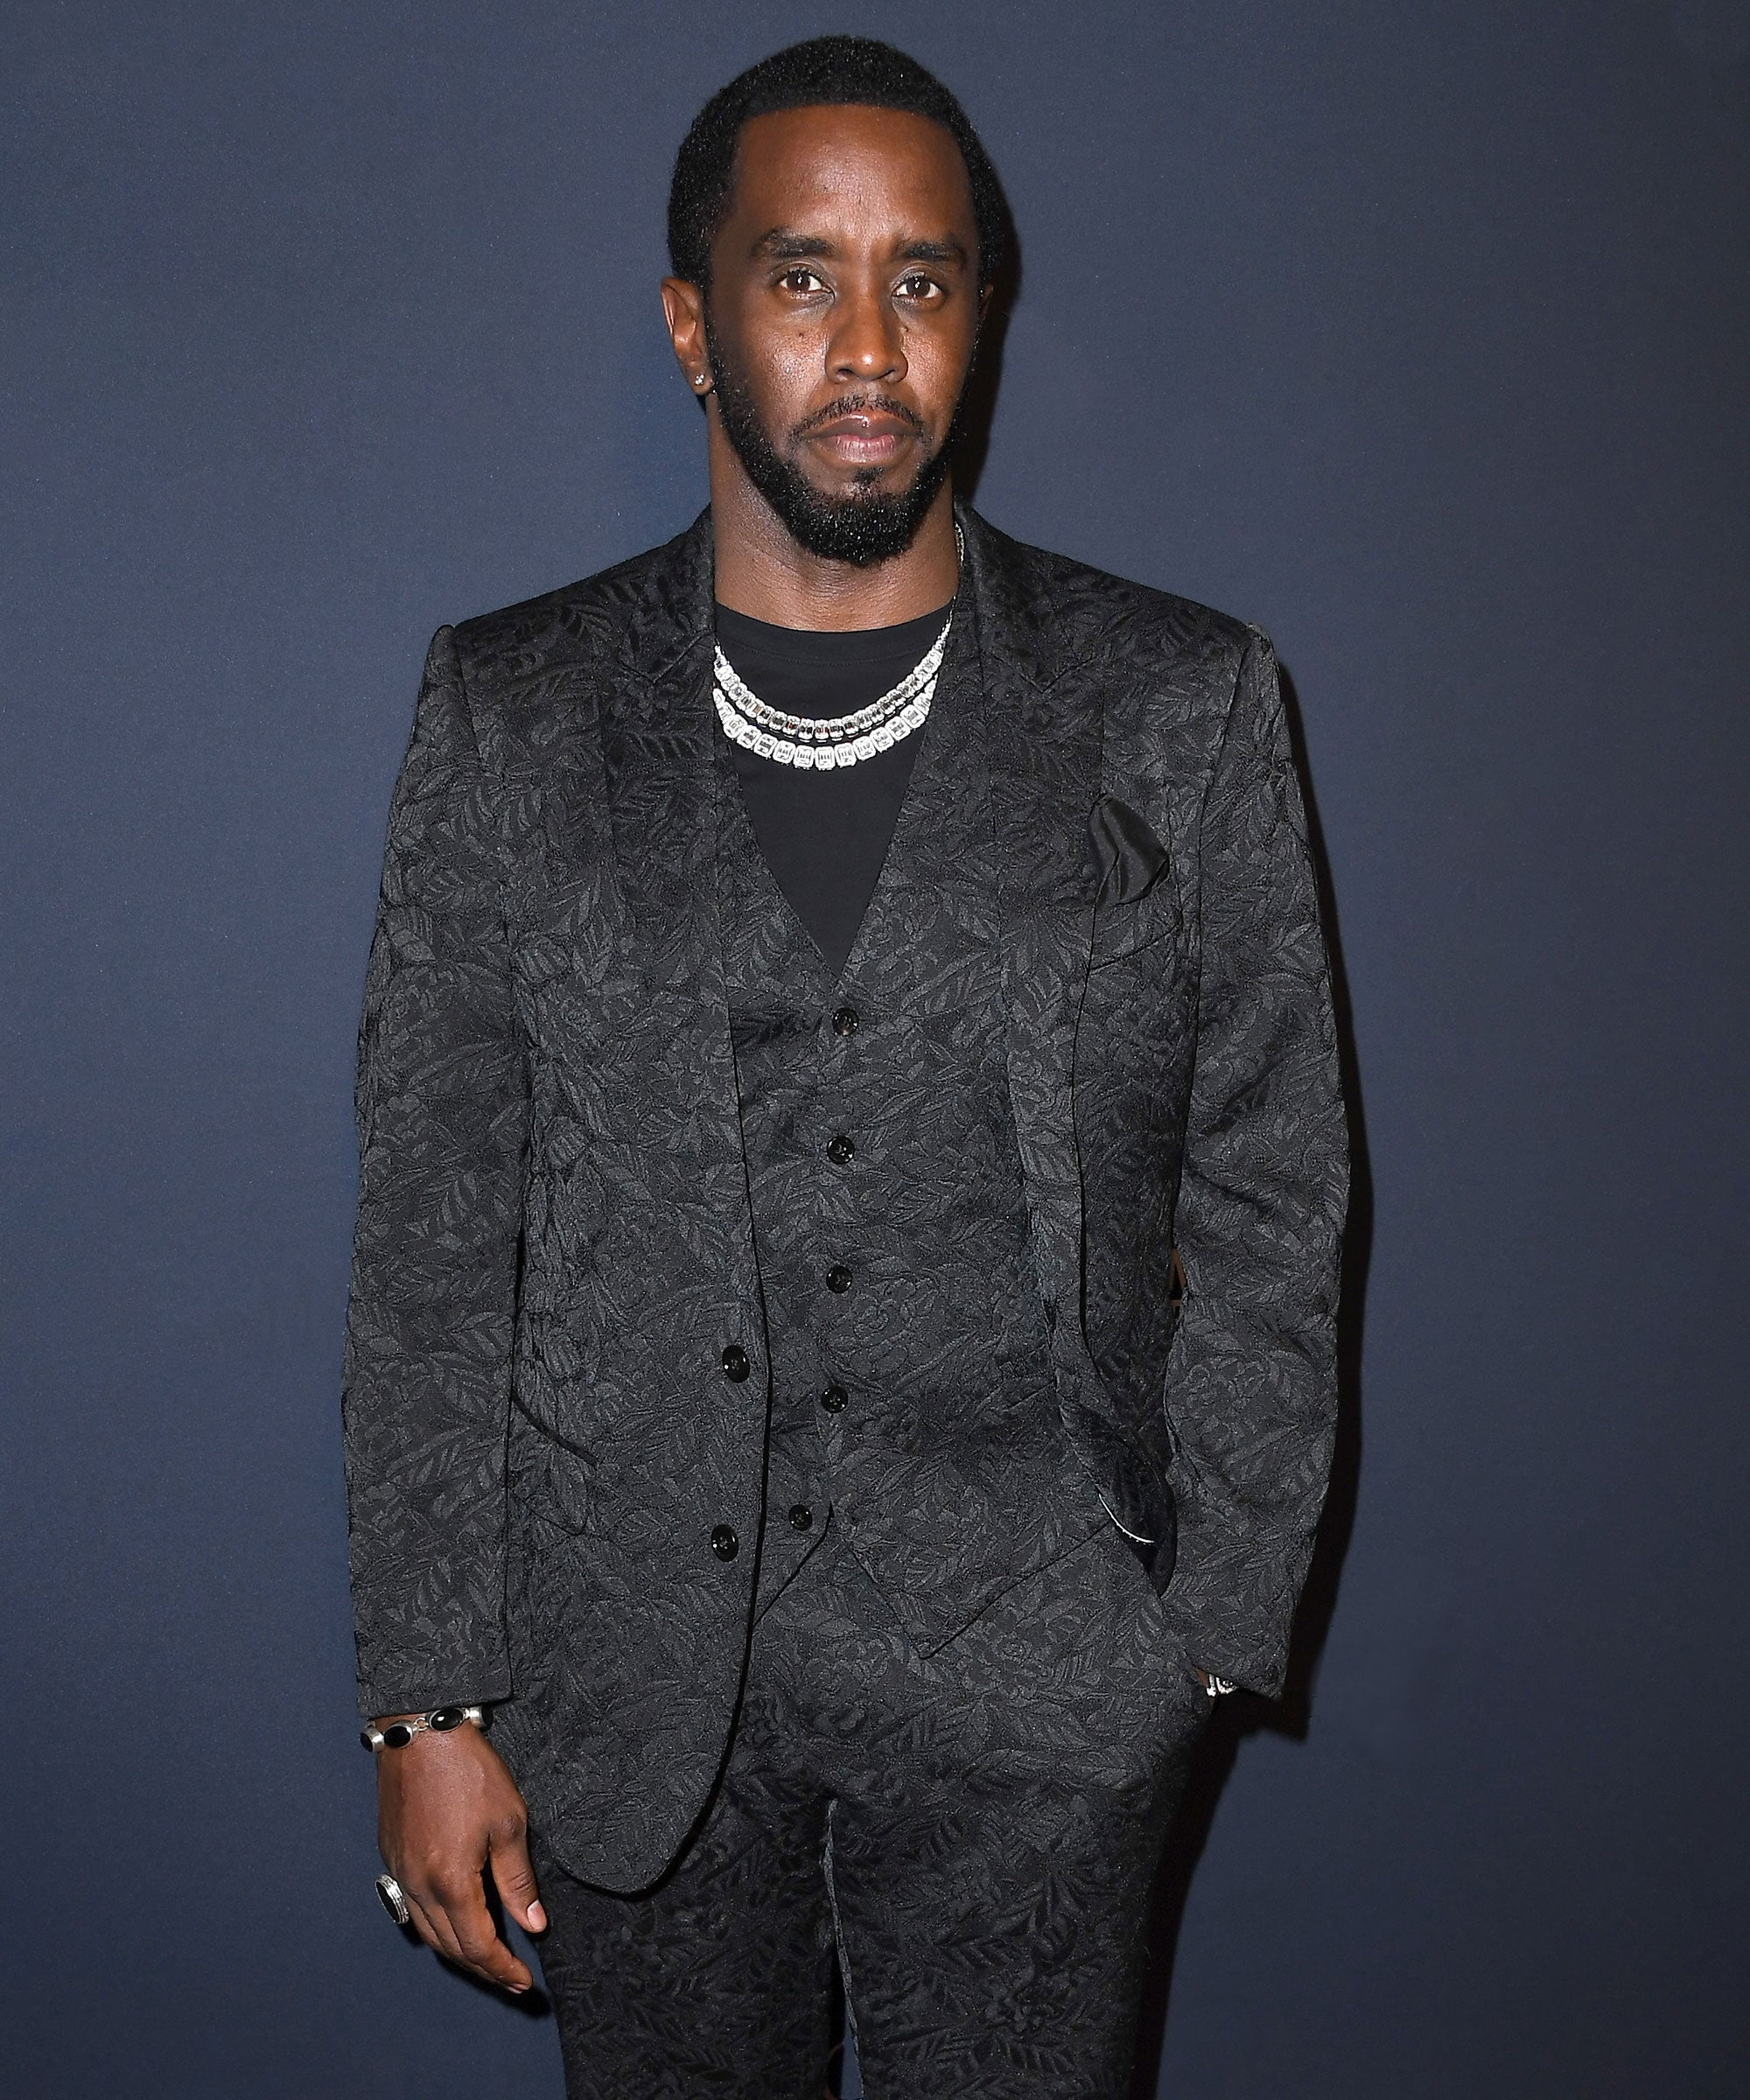 Diddy Calls Out The Grammys For Its Lack Of Respect For Hip-Hop Ahead Of The Show